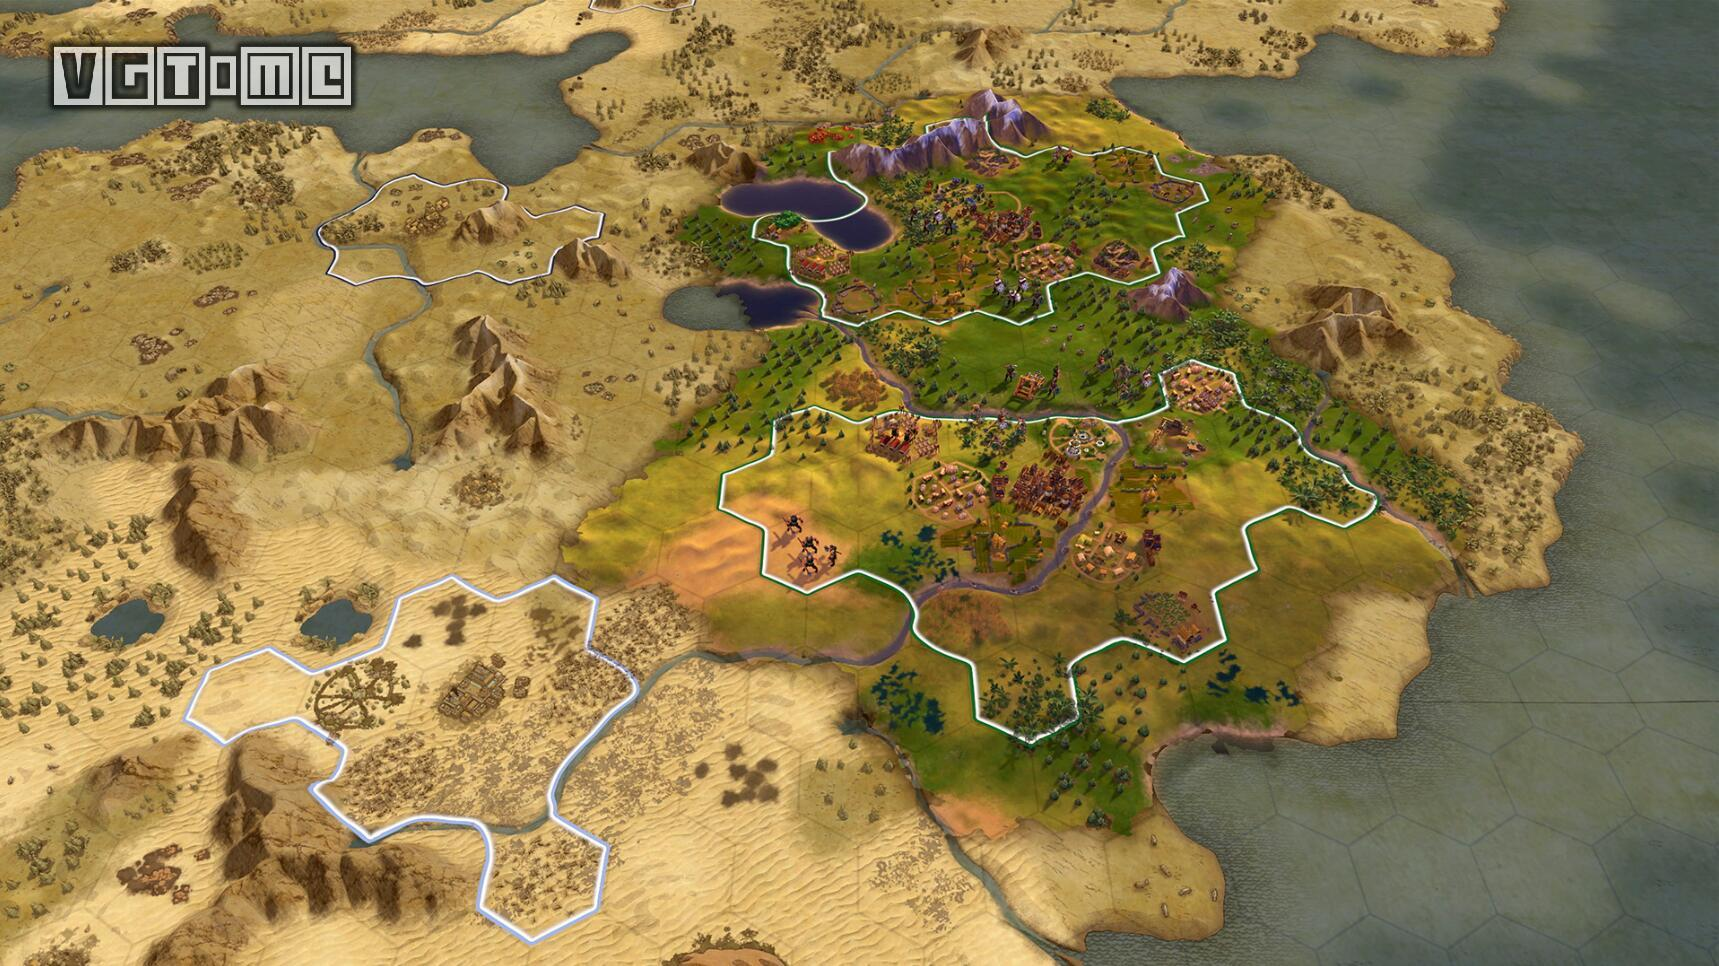 Can't you buy it? PS4 / Xbox one version of civilization 6